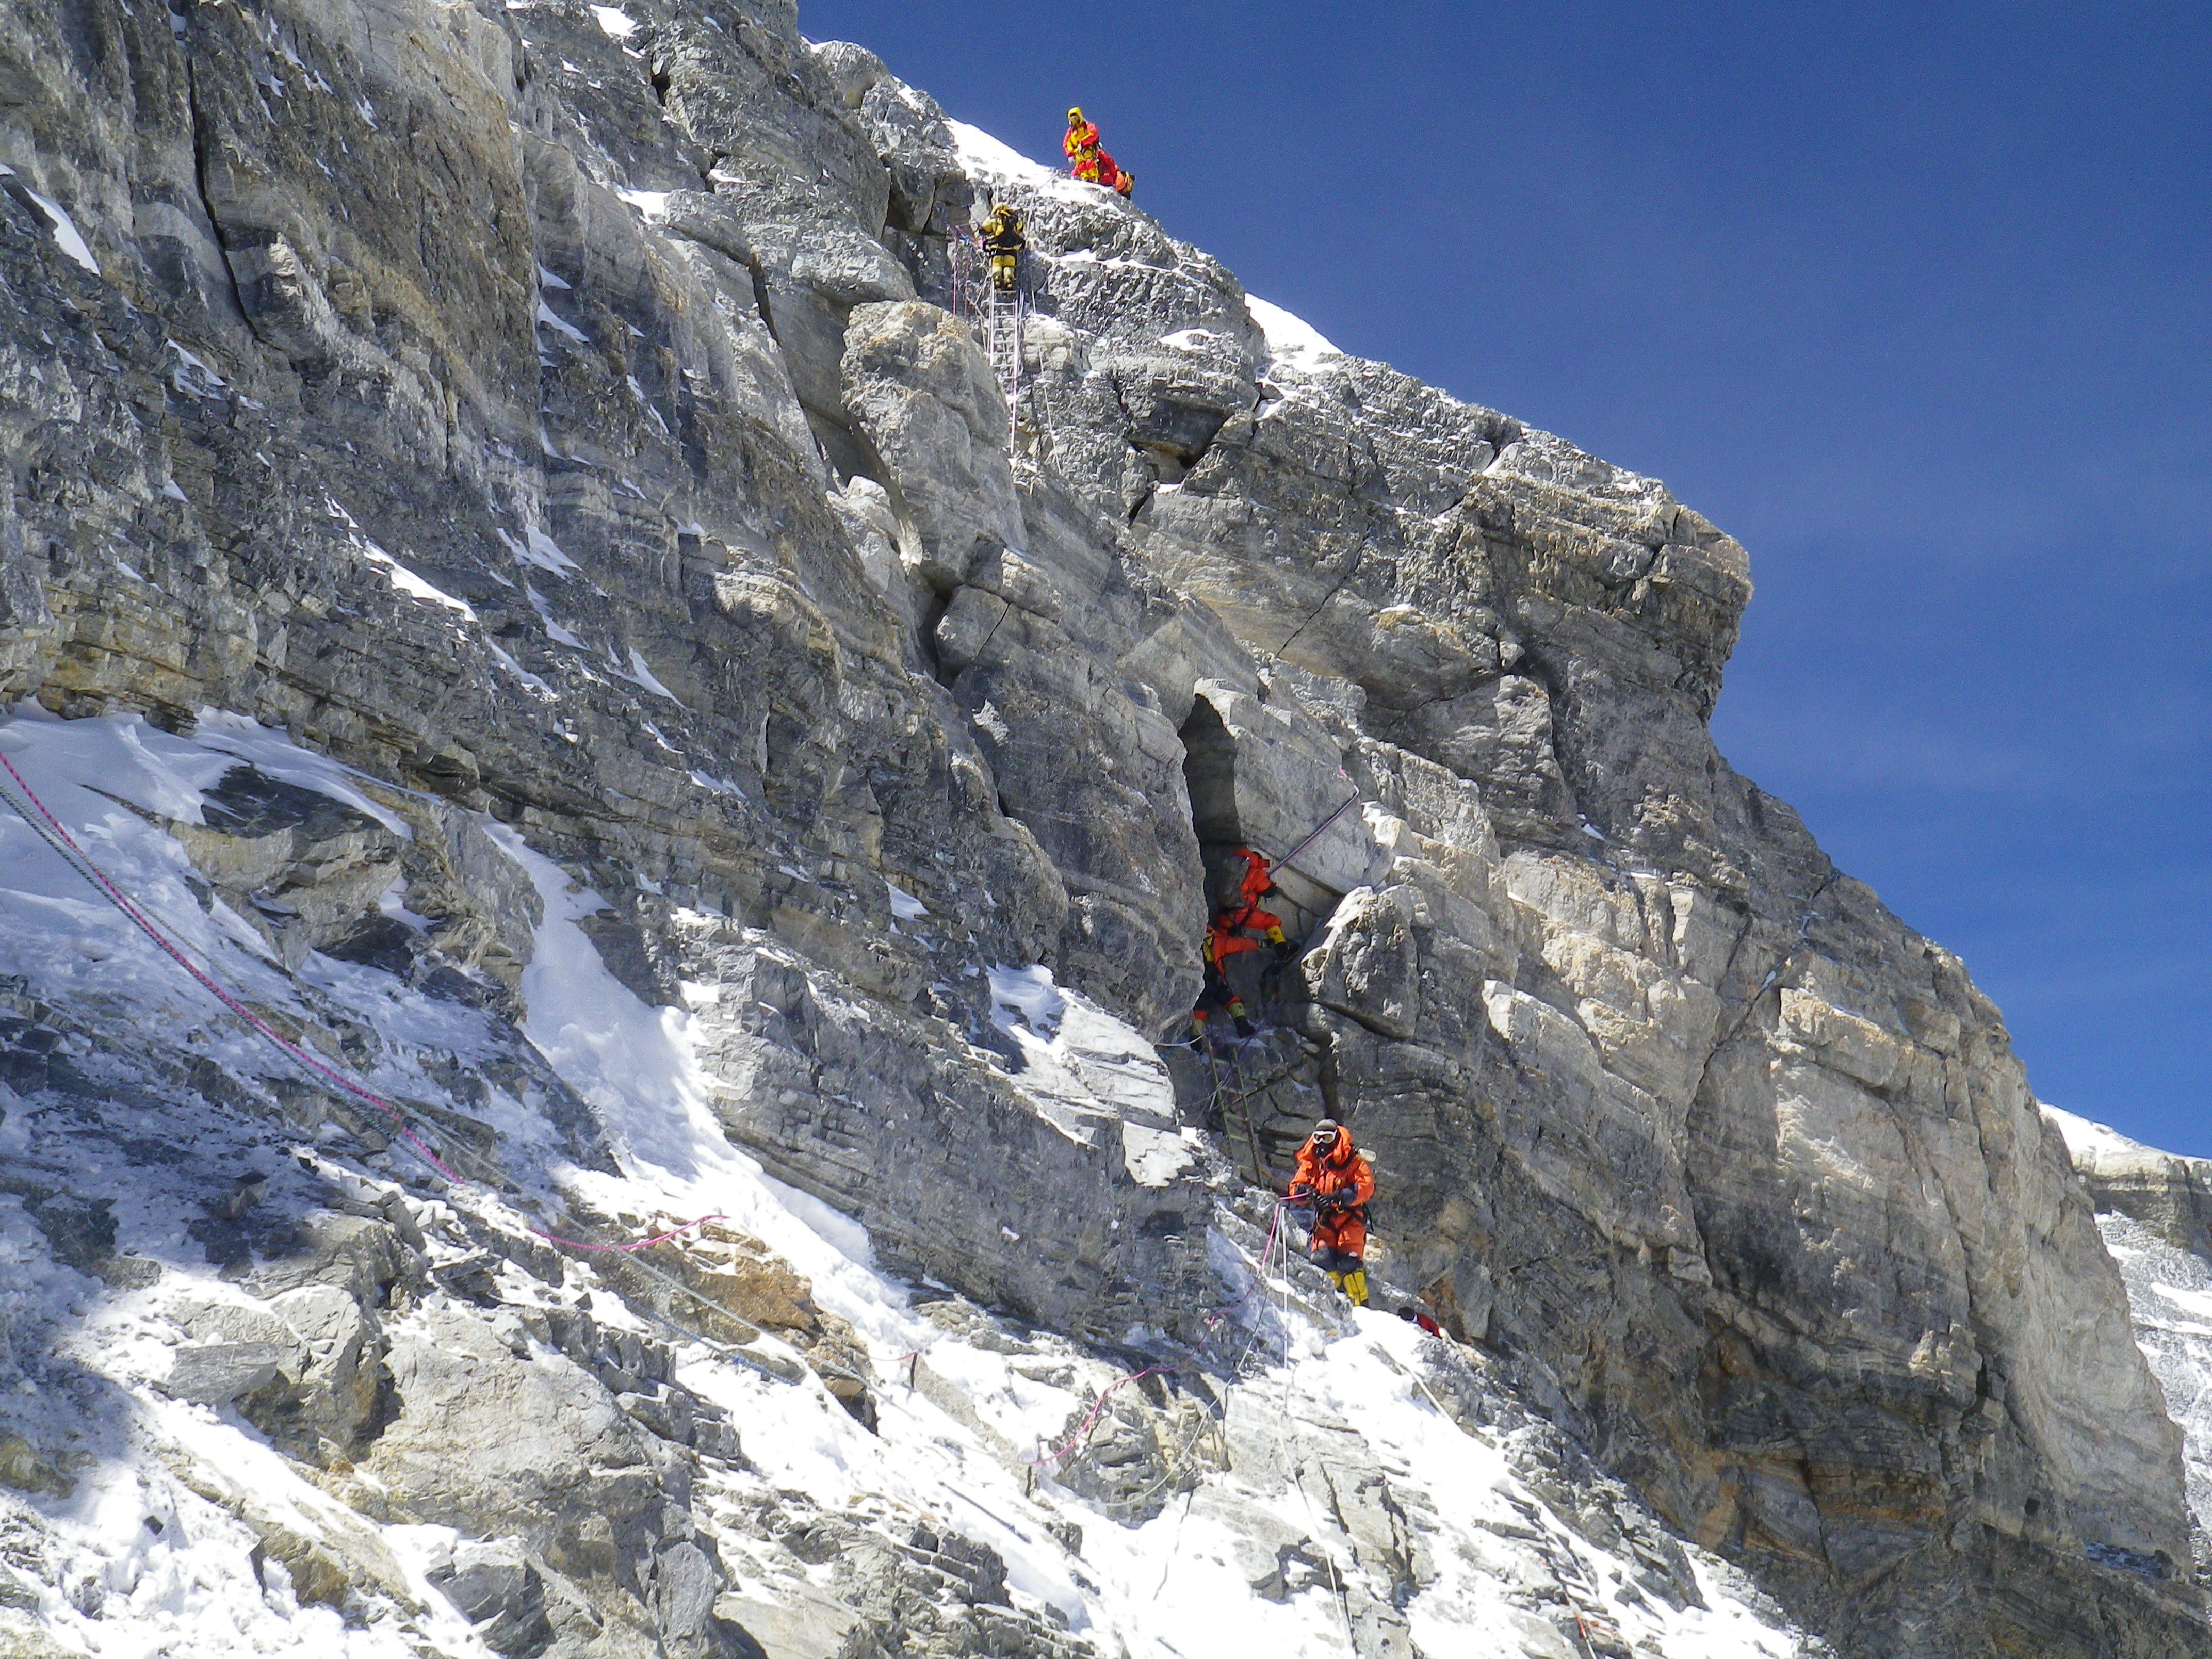 everest north ridge climb - 2nd step & everest north ridge climb - 2nd step | everest | Pinterest